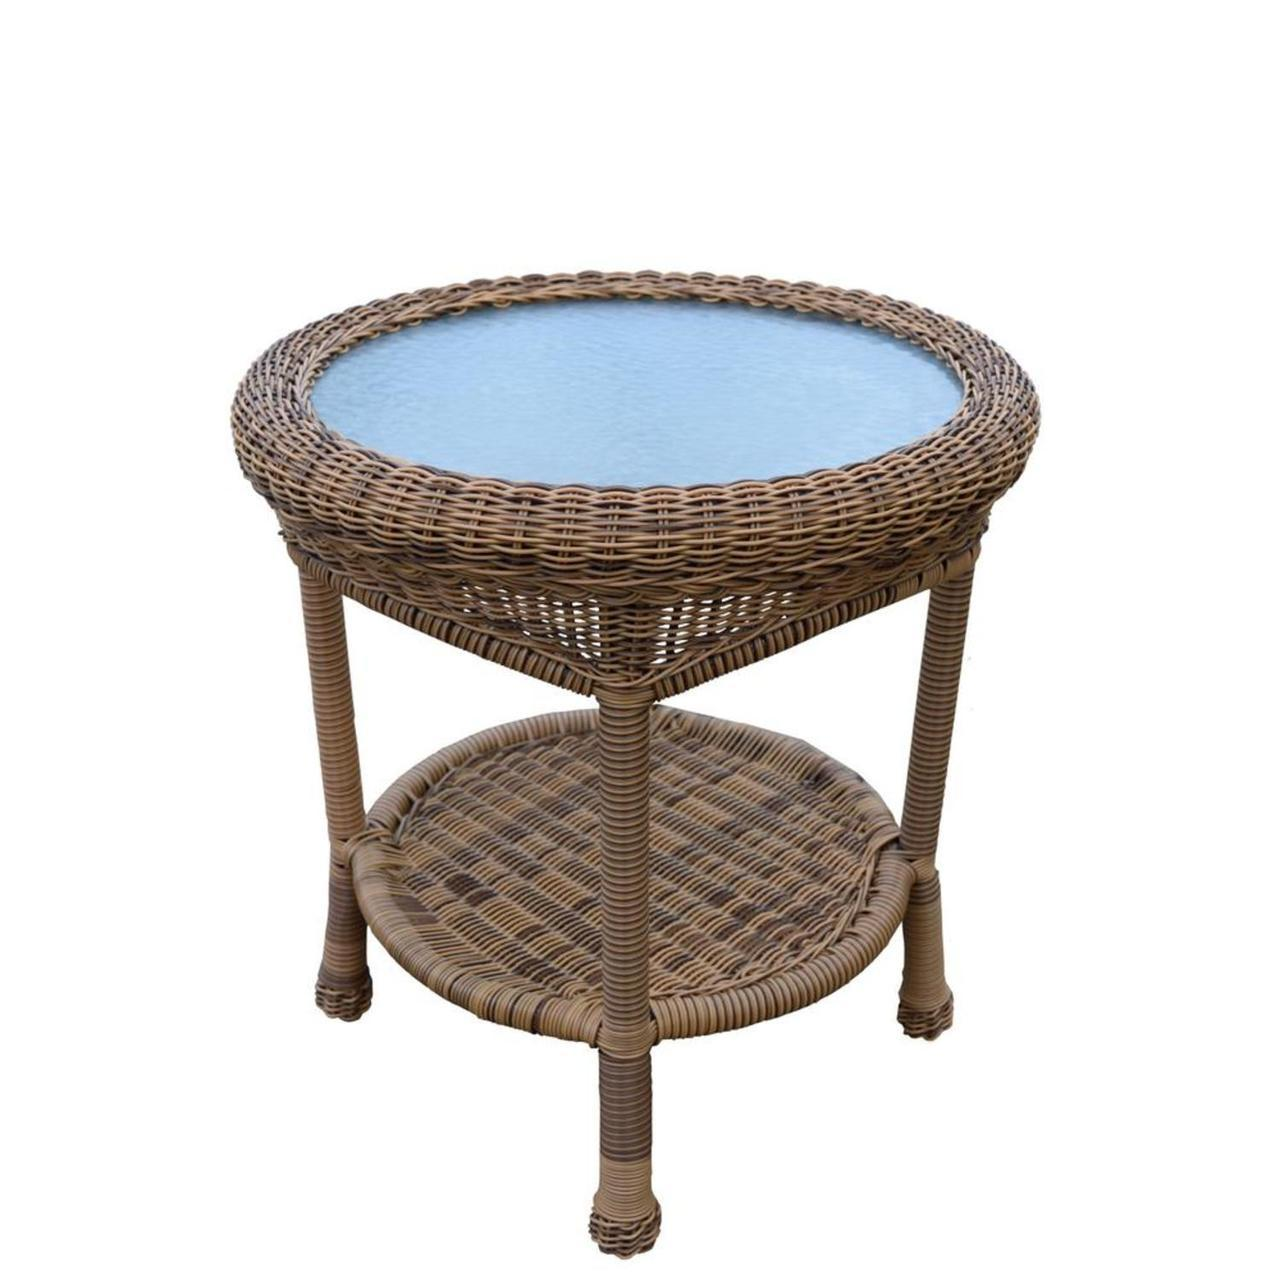 natural brown two level resin wicker end table with glass top tables outdoor living the brick sofa unfinished oak office furniture leick shaker coffee ethan allen country french